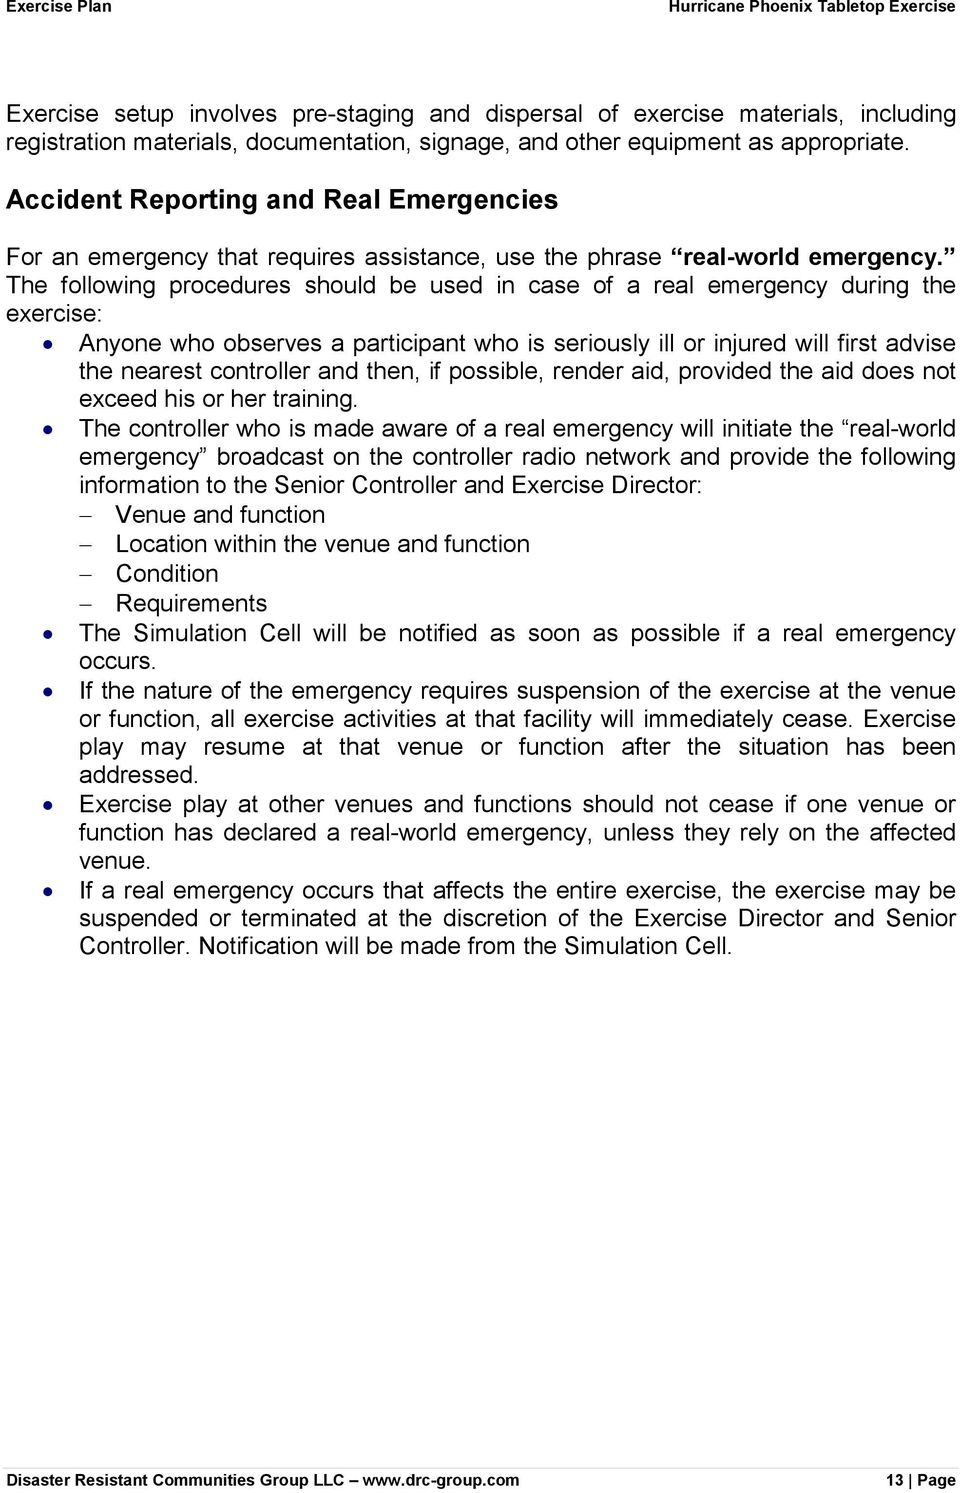 The following procedures should be used in case of a real emergency during the exercise: Anyone who observes a participant who is seriously ill or injured will first advise the nearest controller and